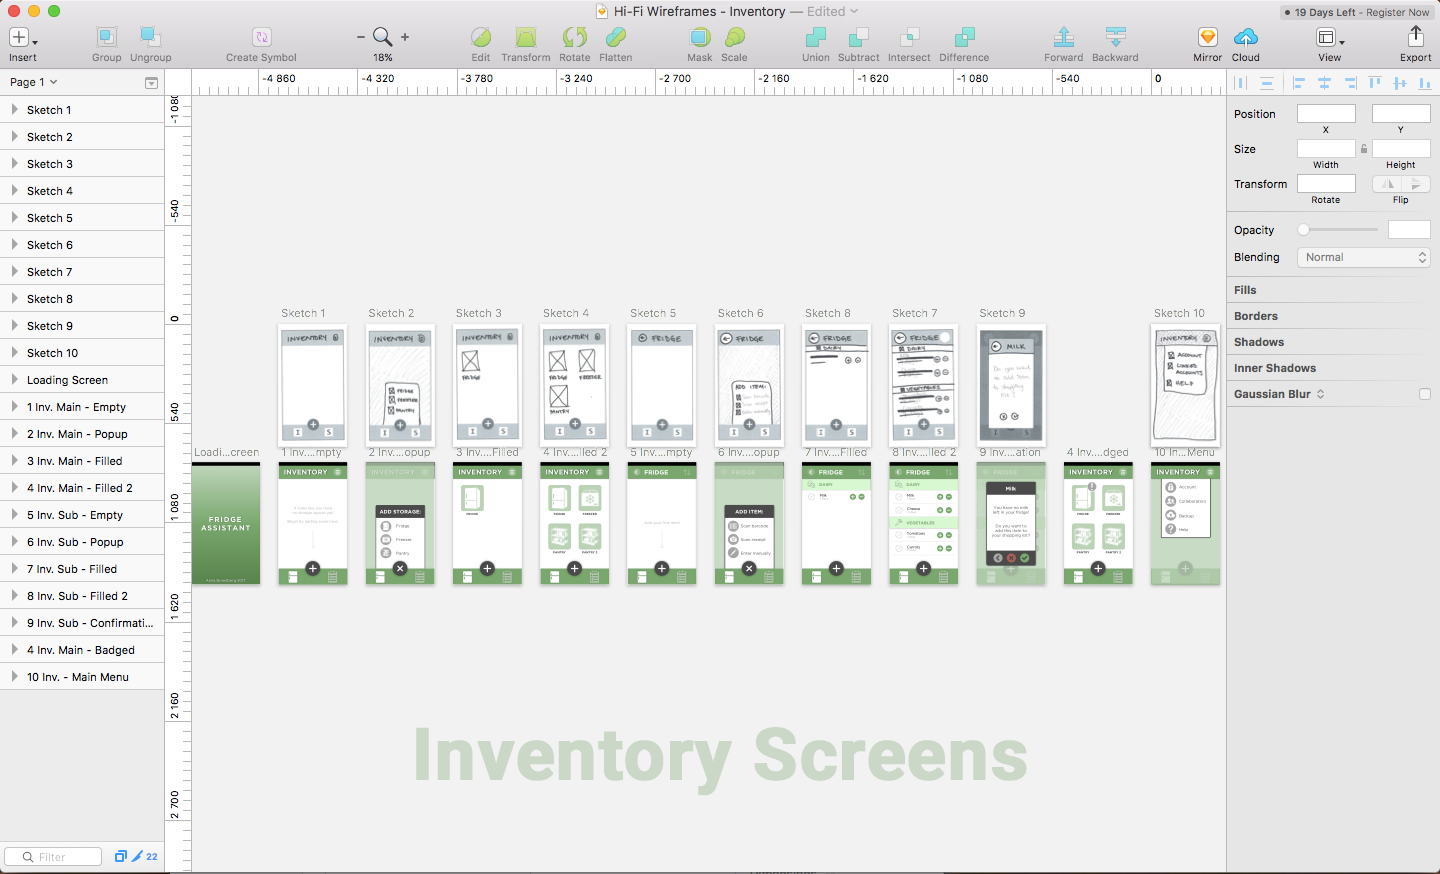 screens-inventory.png